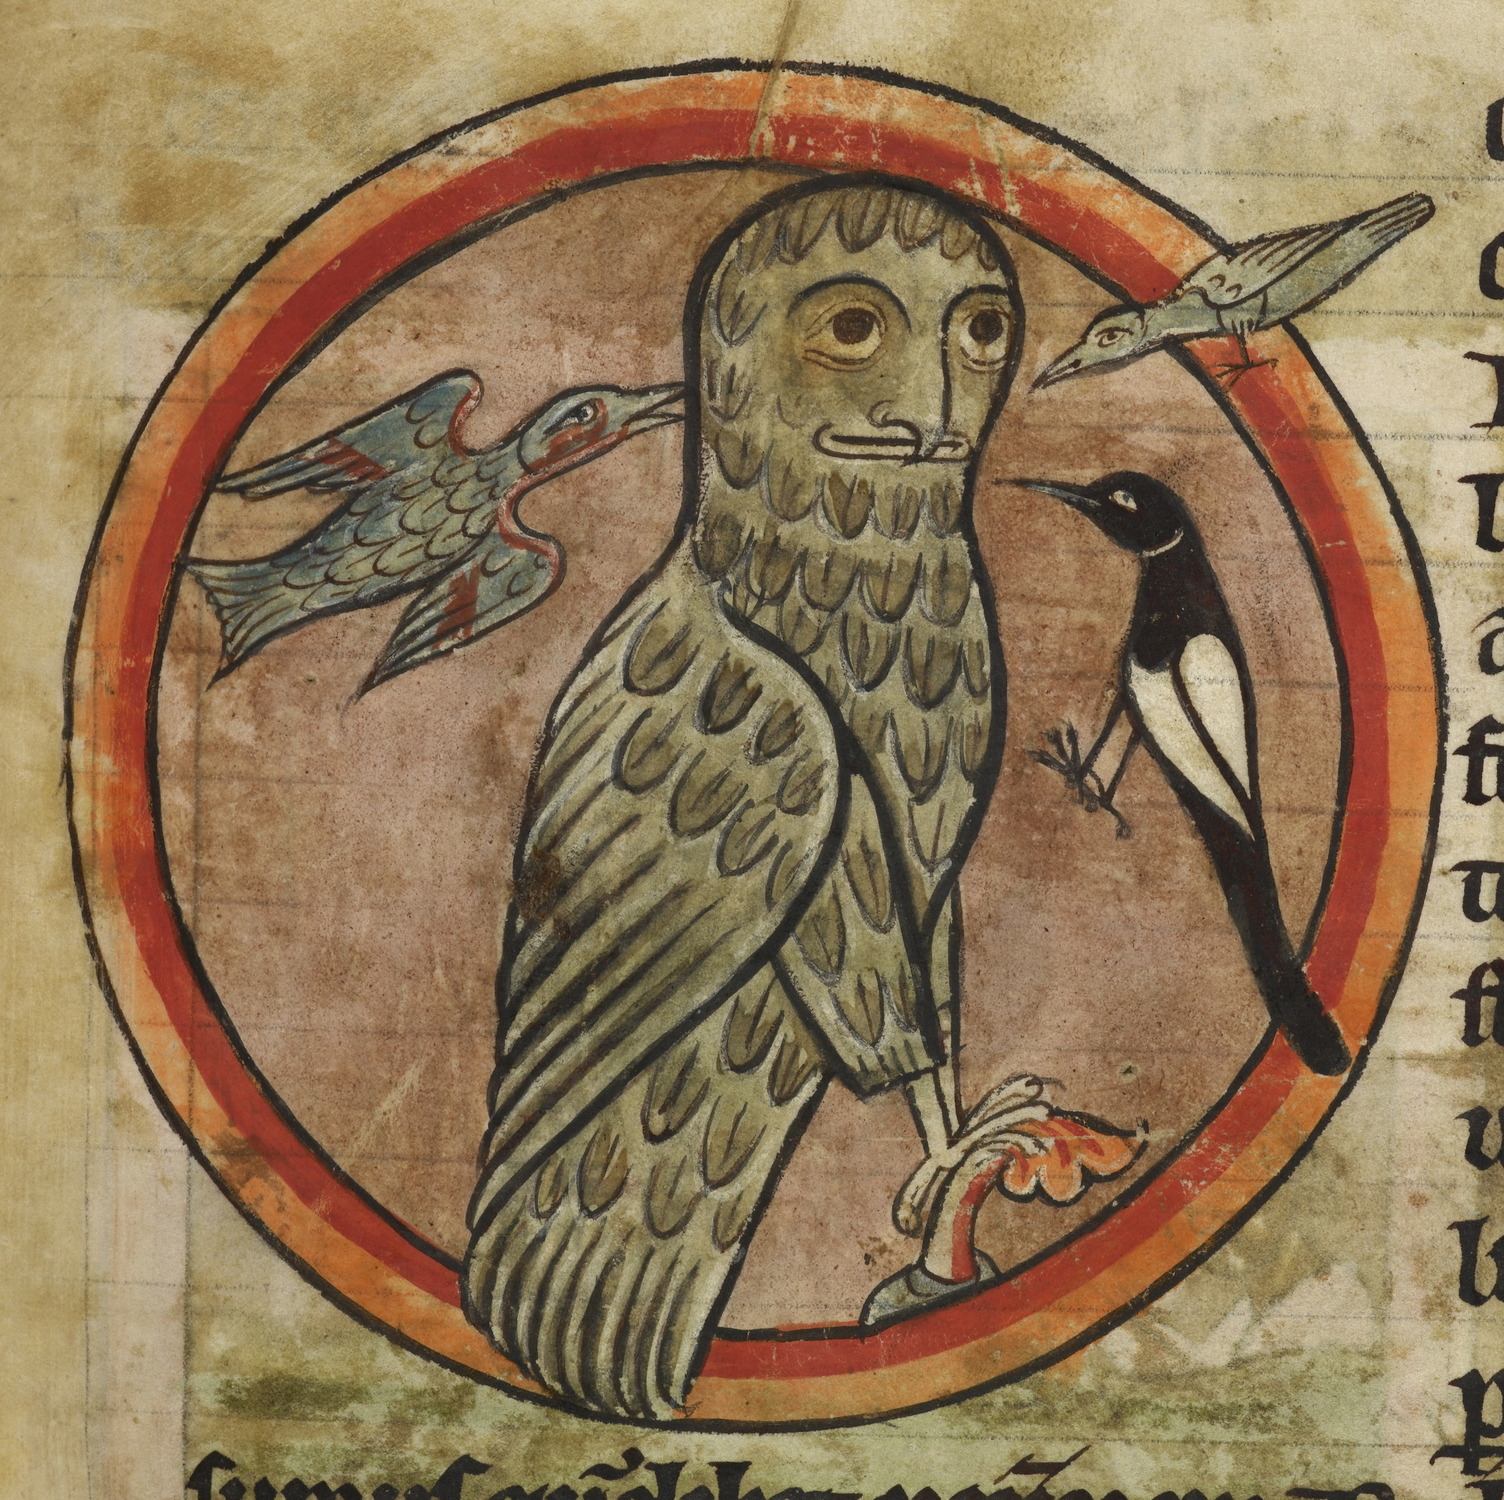 Owl_mobbed_by_smaller_birds_-_Bestiary_(1230-1240),_f.47_-_BL_Harley_MS_4751.jpg